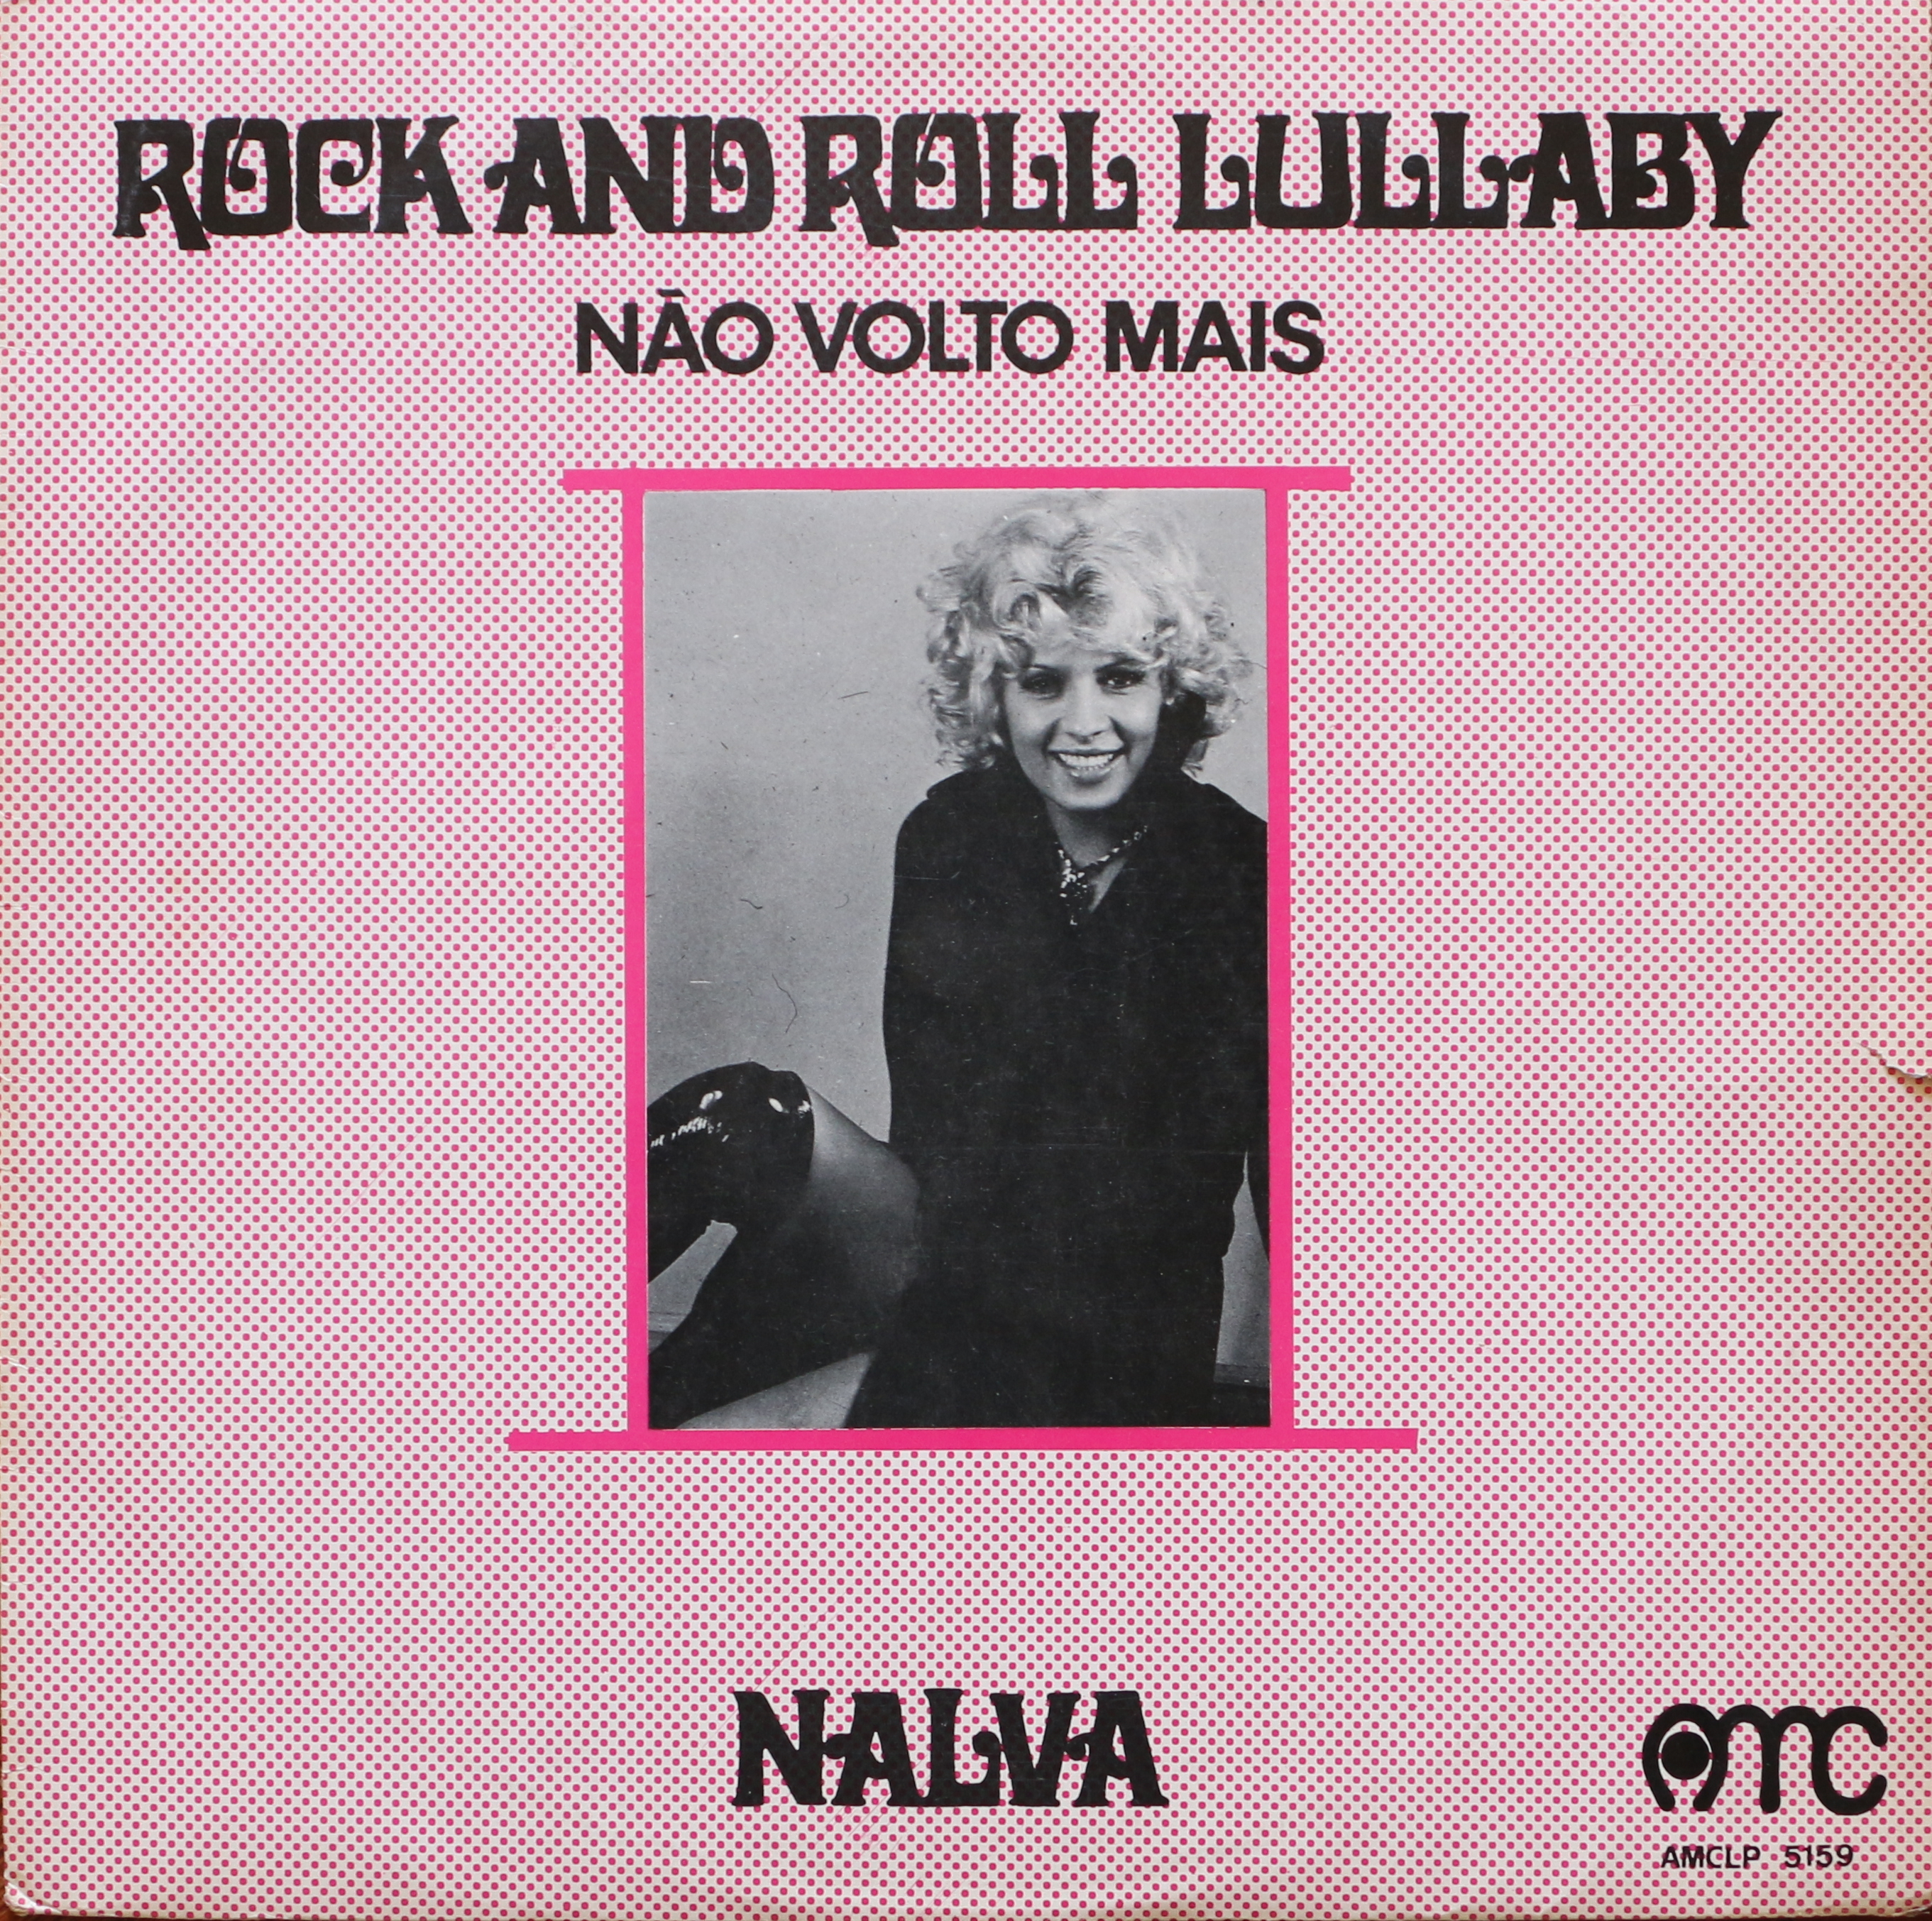 Dig Deep: Nalva Aguiar - Não Volto Mais (Rock And Roll Lullaby) - AMC (1972)